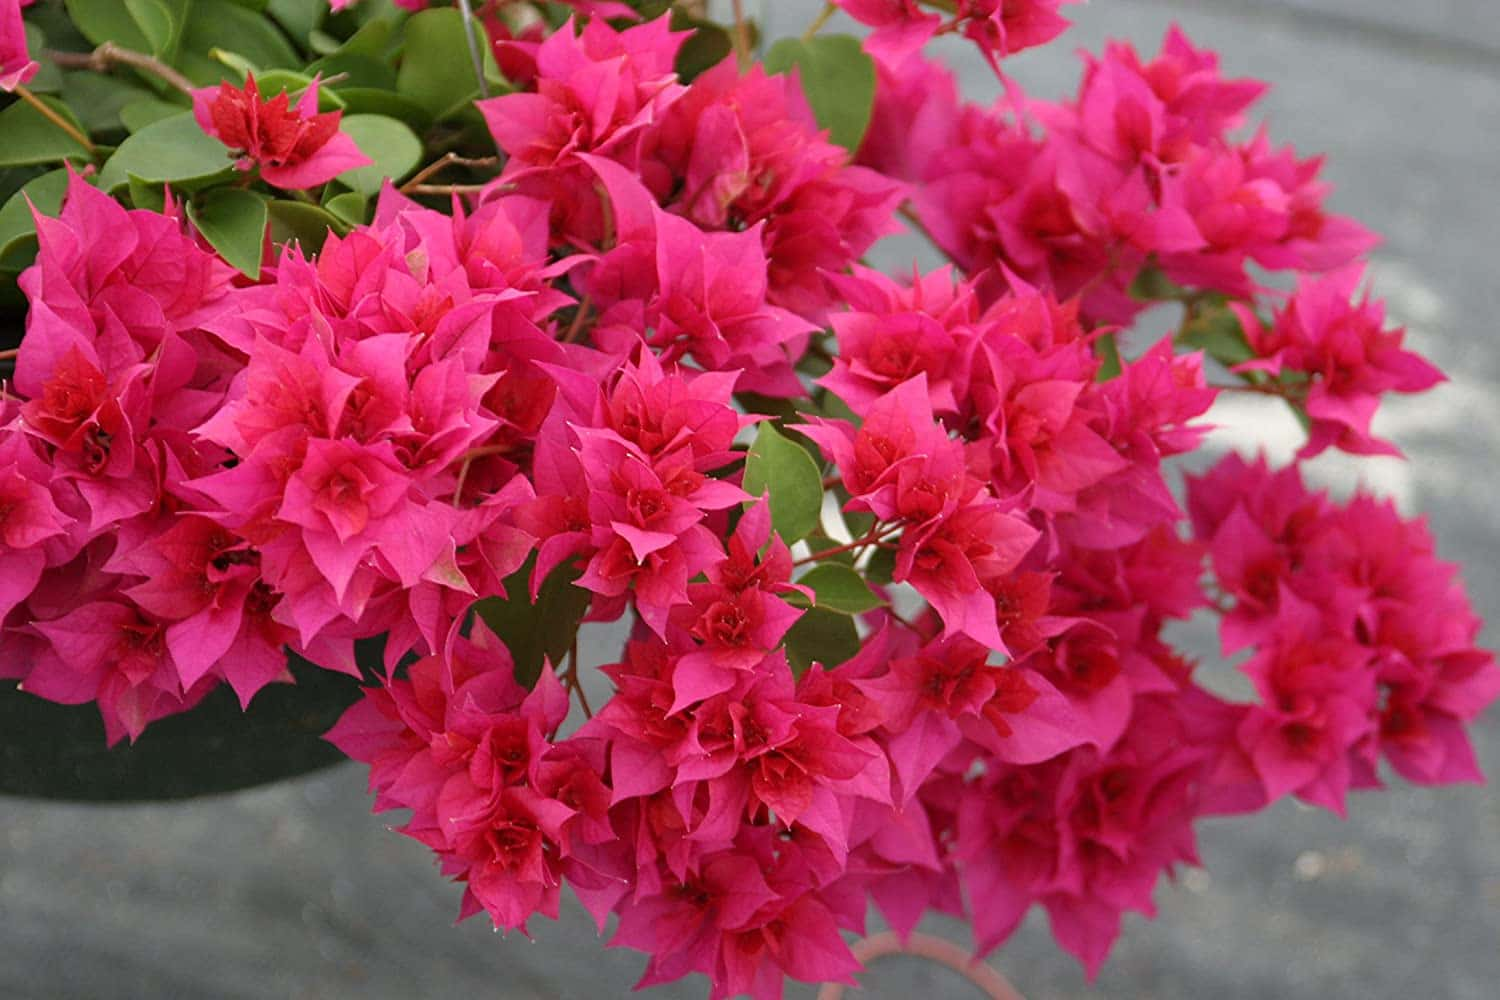 Double bloom bougainvillea in bright pink fills a commercial landscaping pot